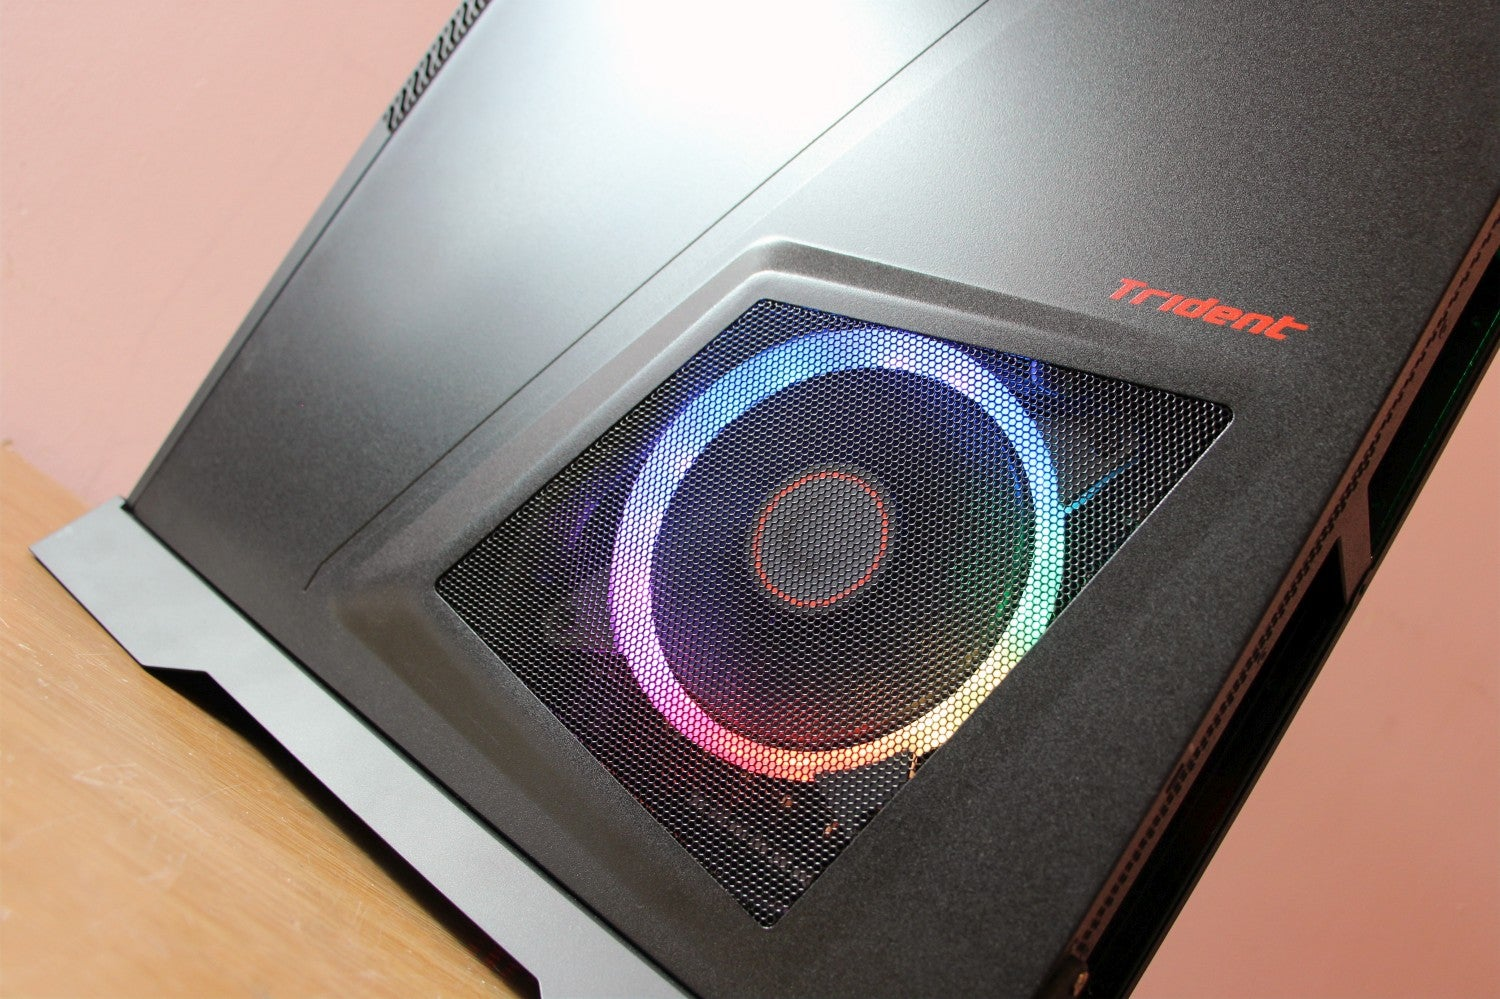 MSI Trident X review 01